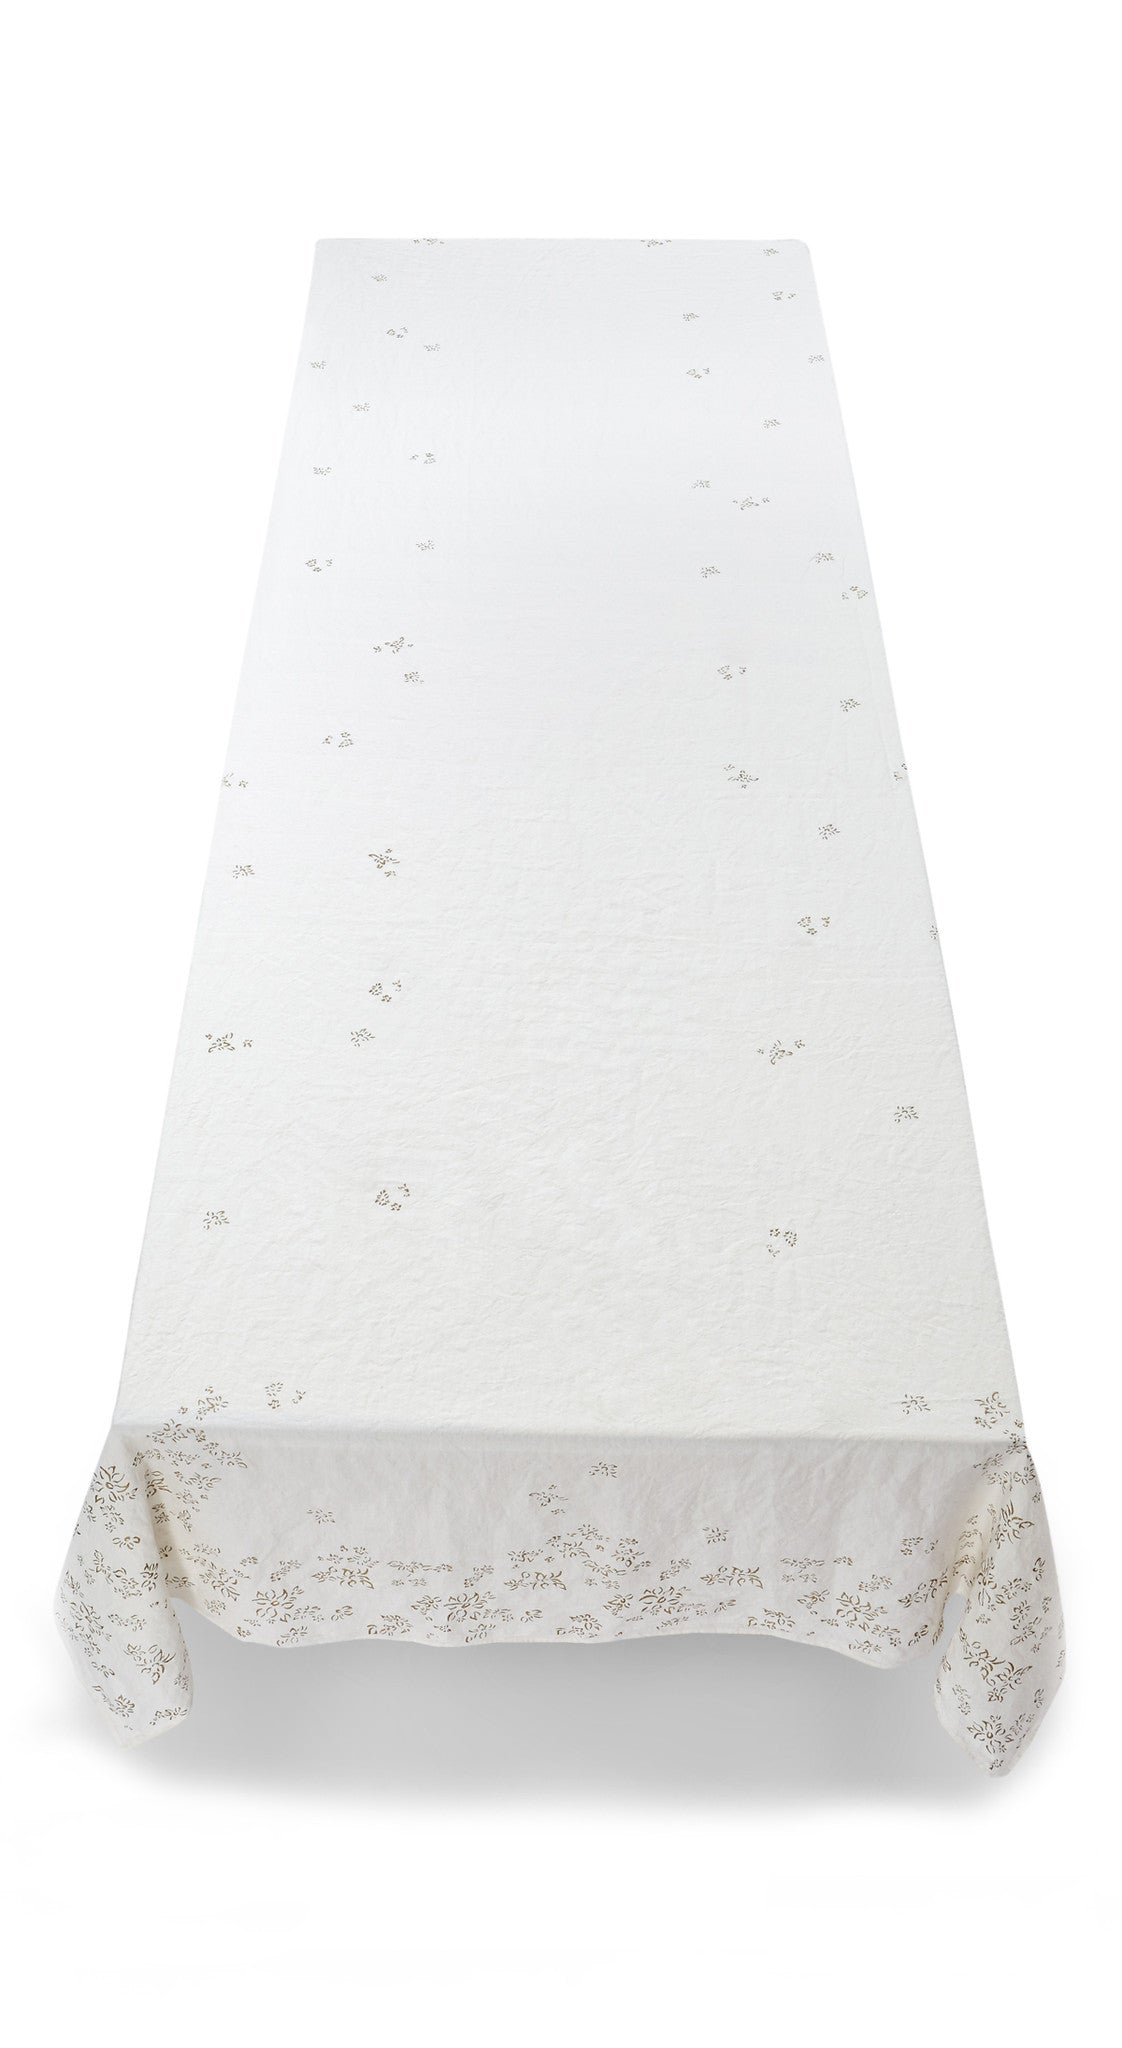 Bernadette's Hand Stamped Falling Flower Linen Tablecloth in Gold